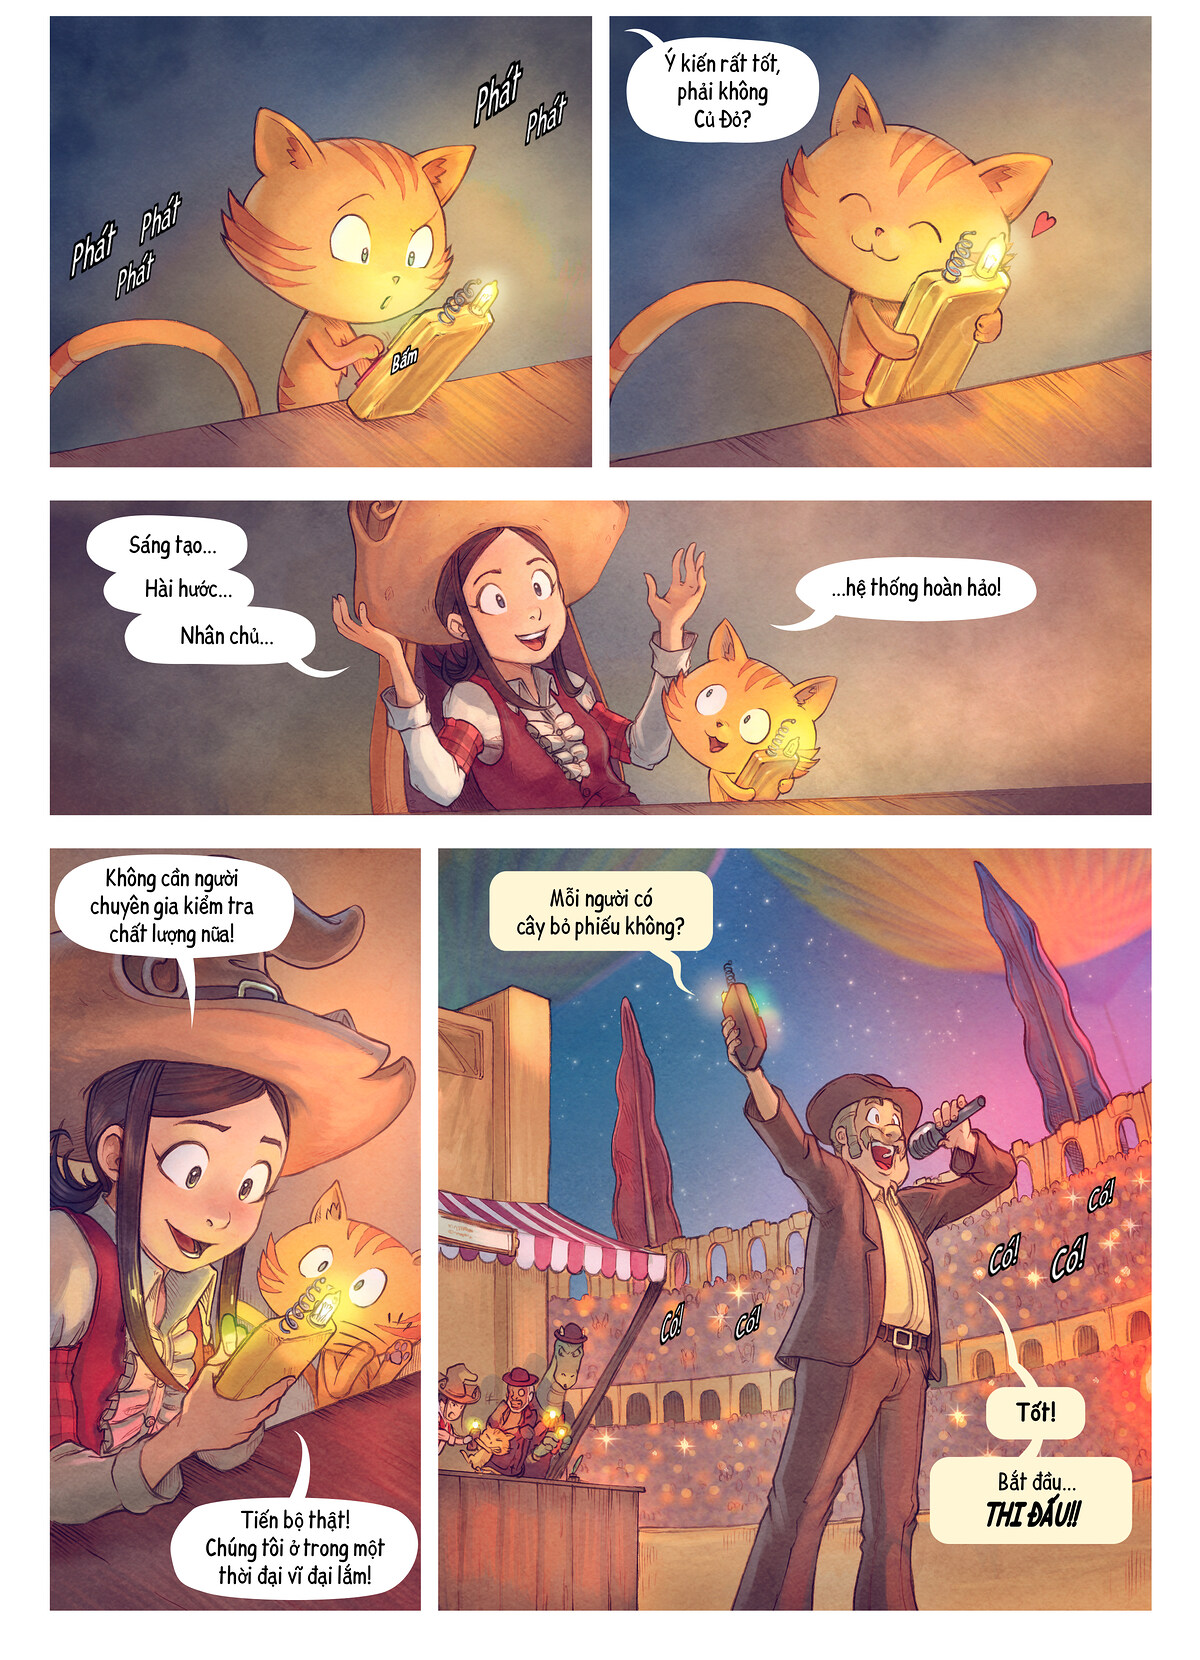 A webcomic page of Pepper&Carrot, Tập 22 [vi], trang 4